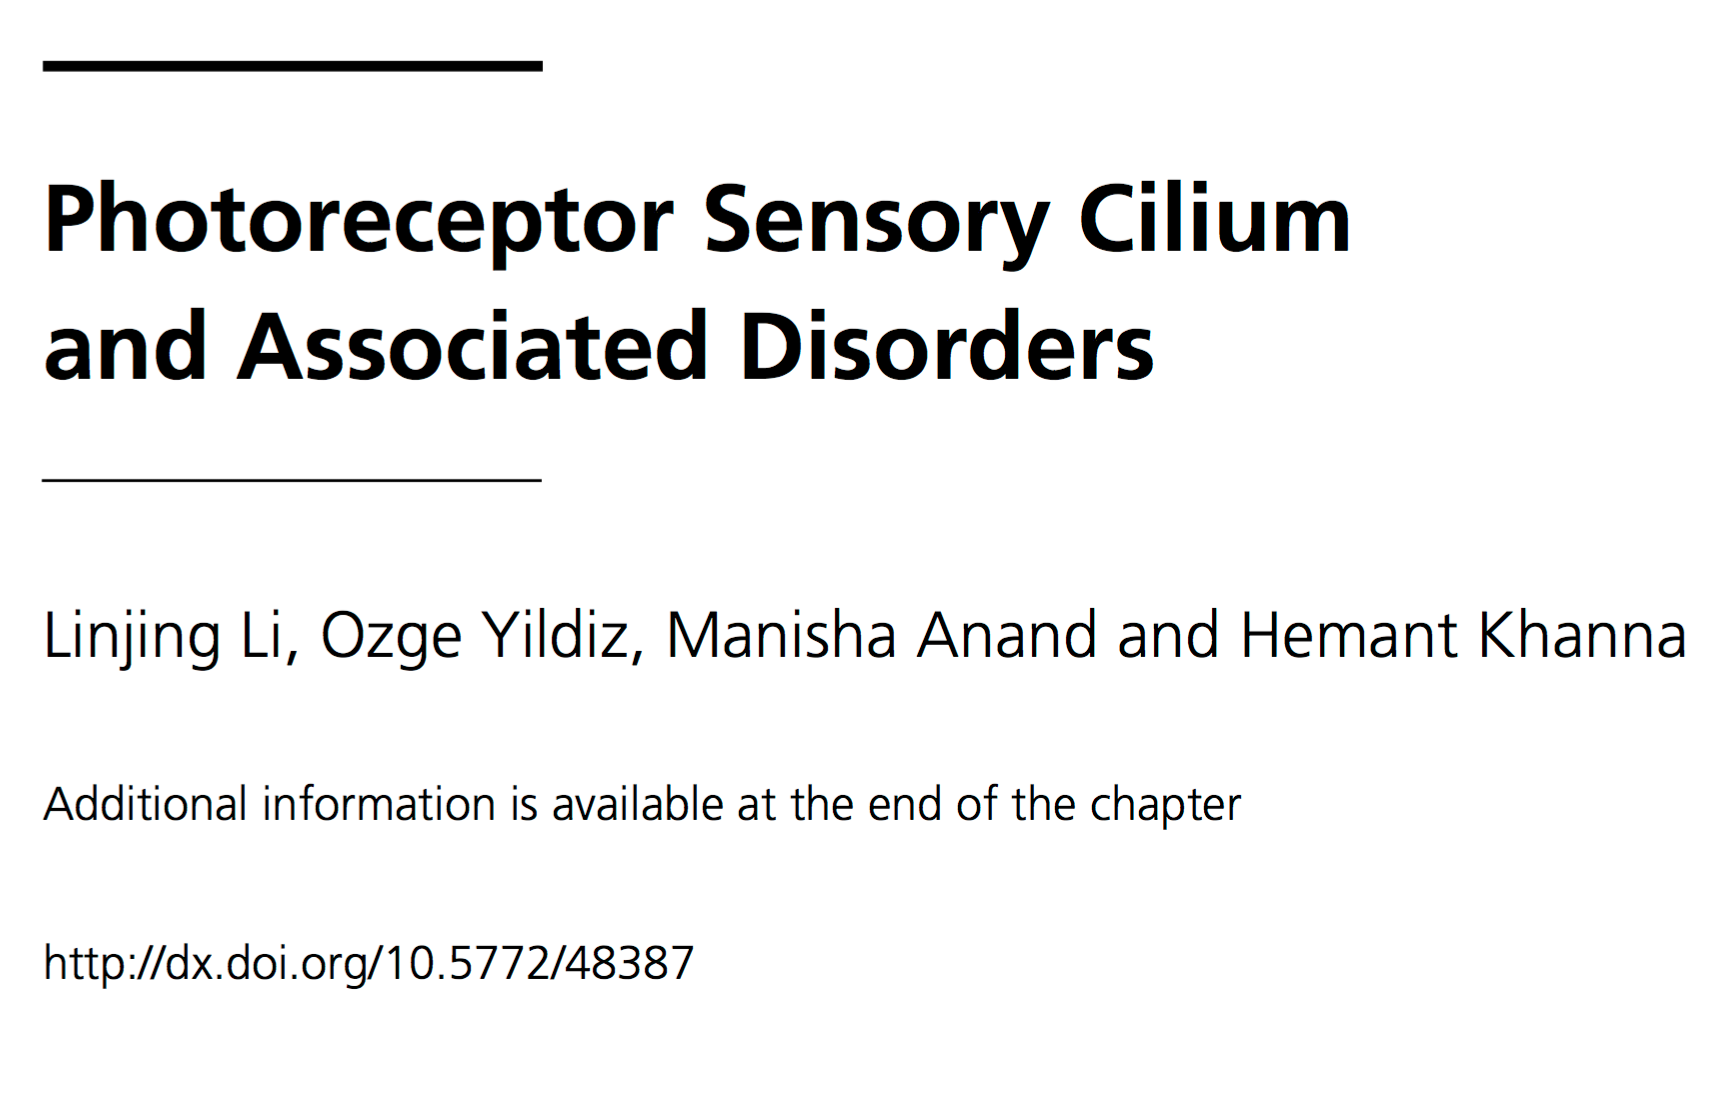 Photoreceptor Sensory Cilium and Associated Disorders